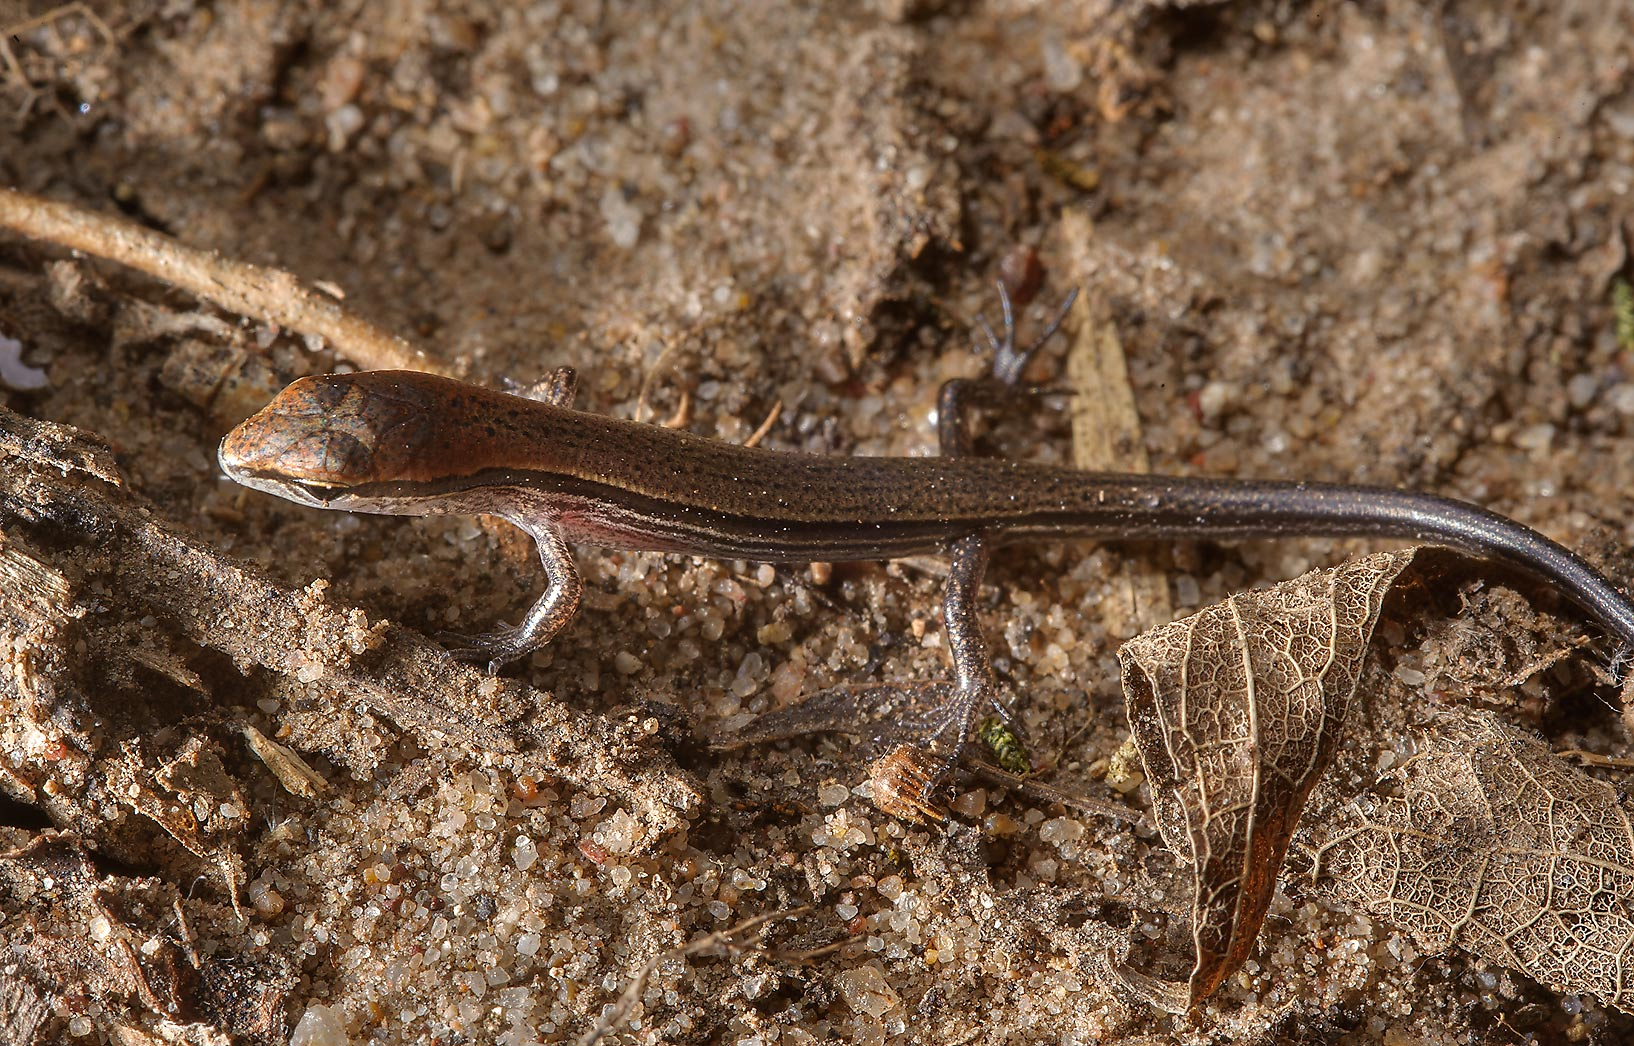 Ground skink (Scincella lateralis) lizard on a...State Historic Site. Washington, Texas